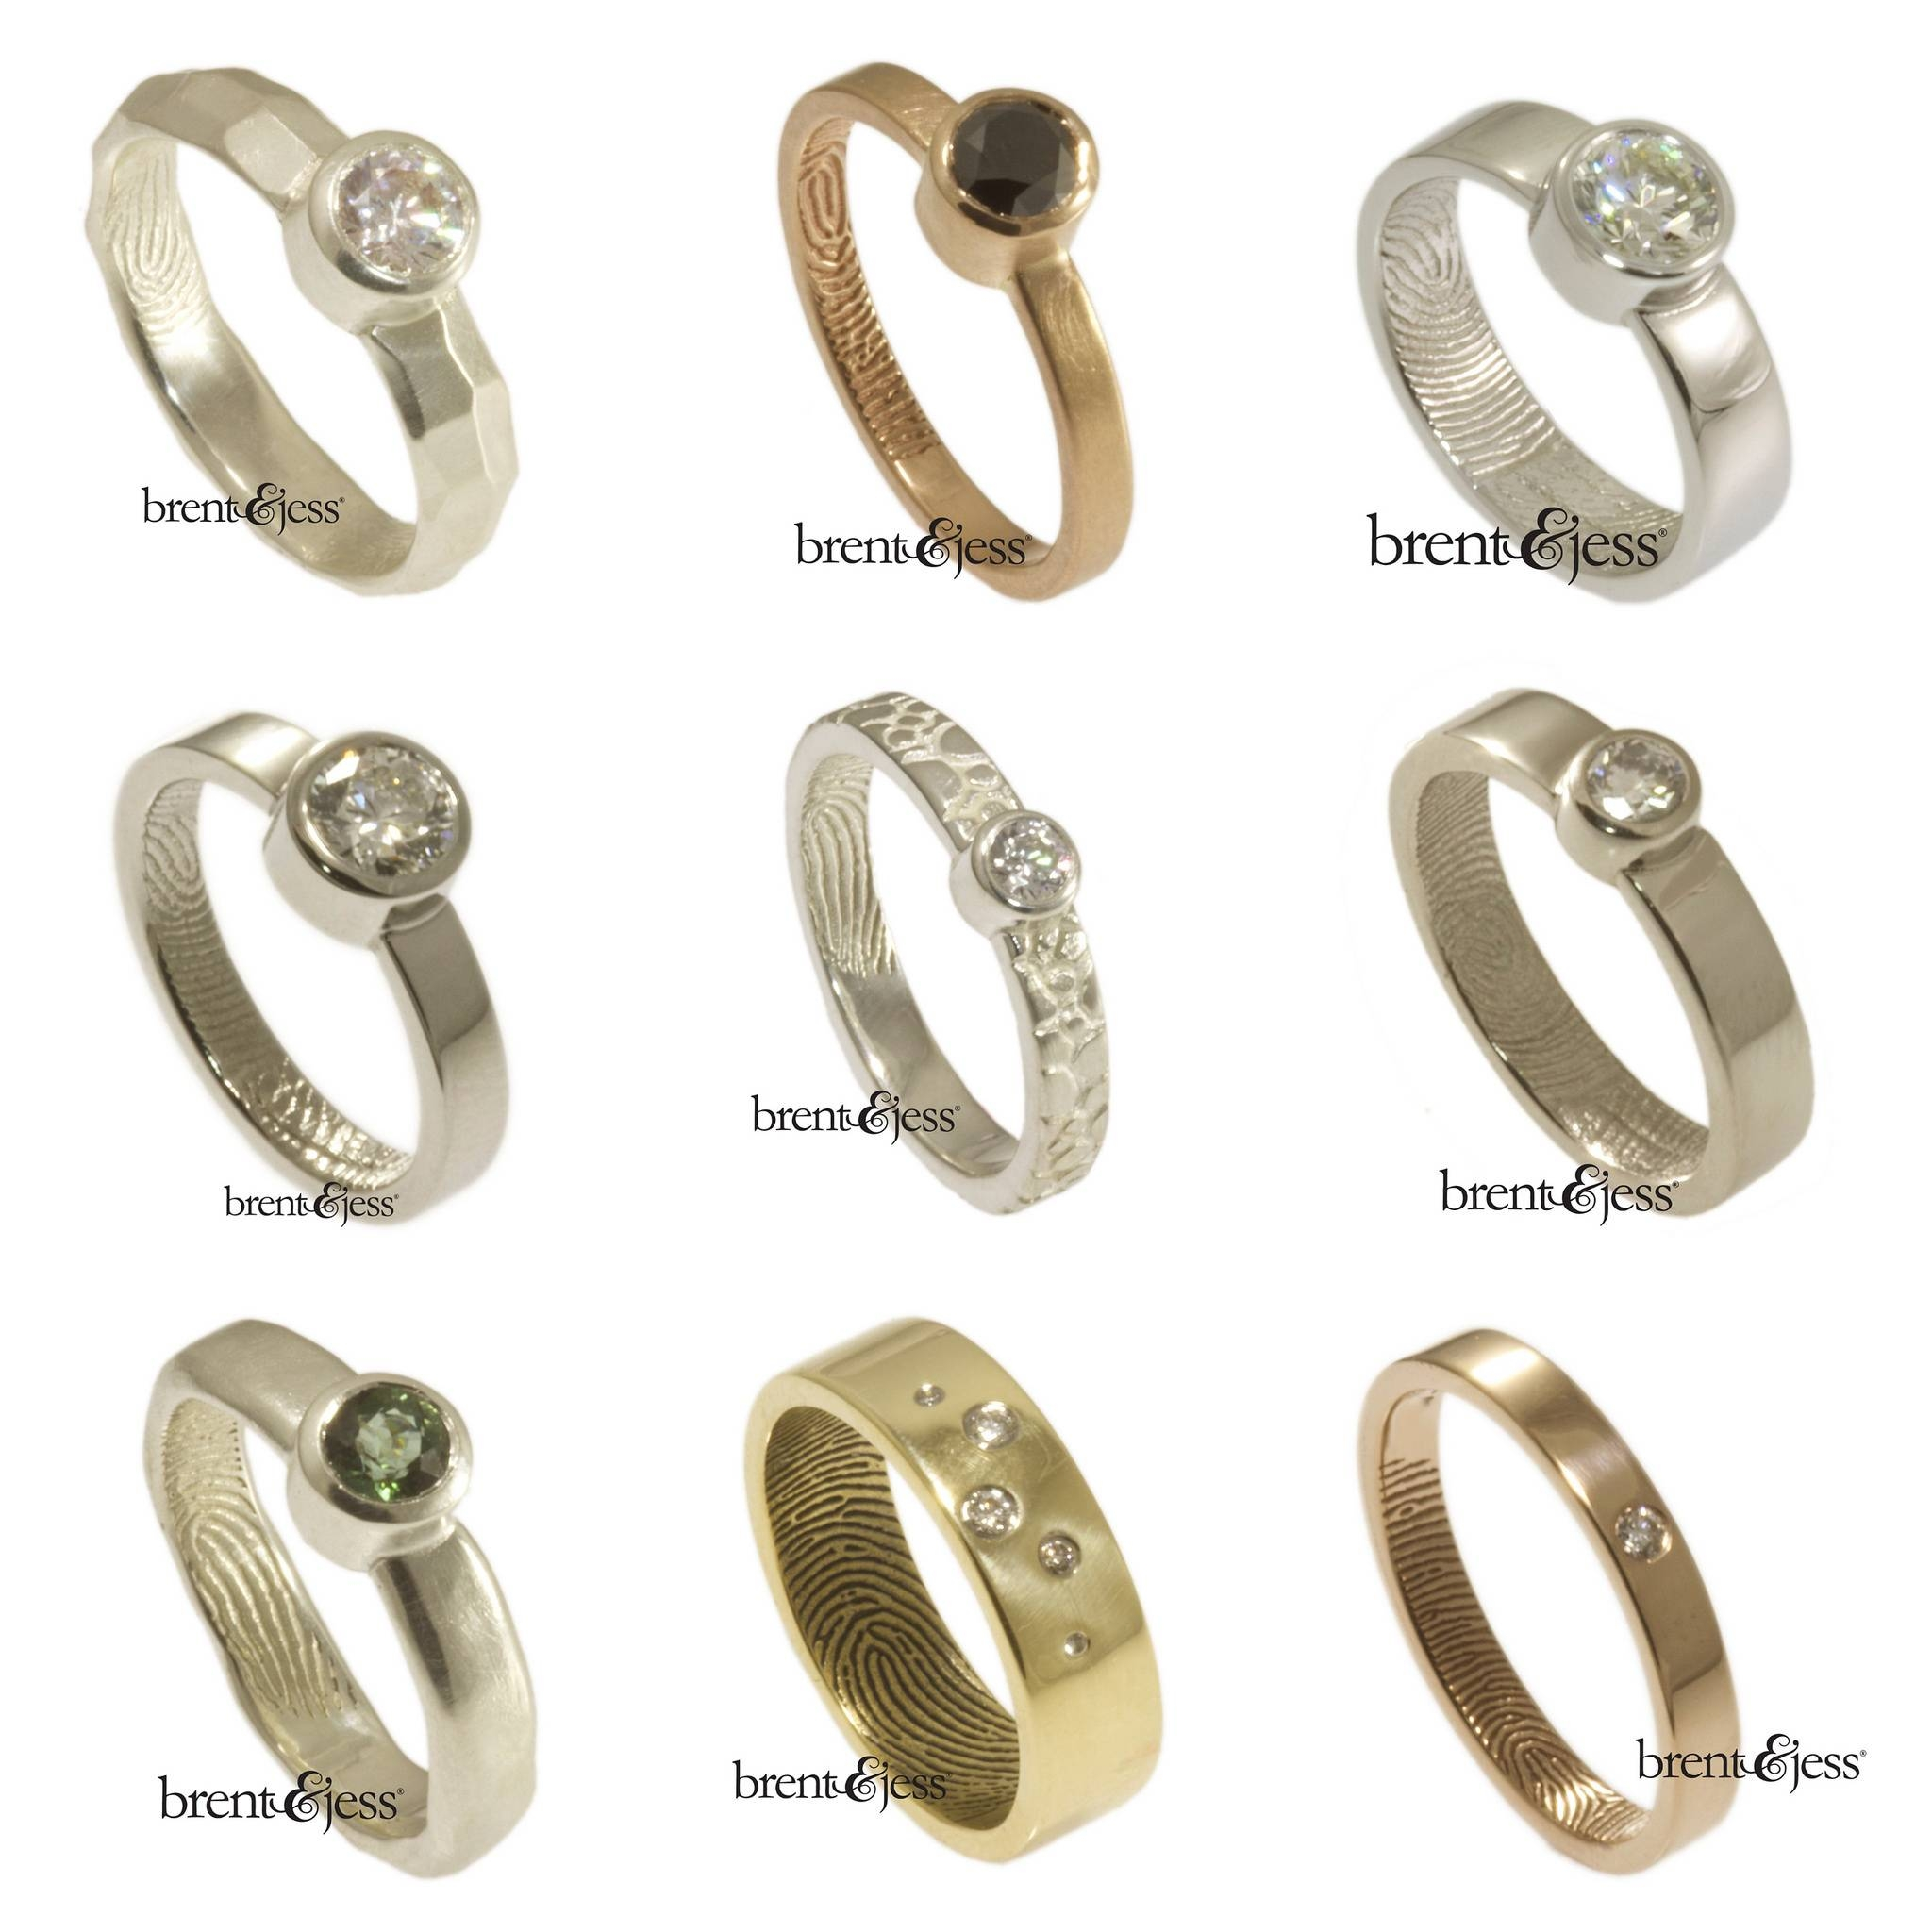 10 Non Traditional Engagement Rings For Under $1K | A Practical In Untraditional Wedding Bands (View 1 of 15)